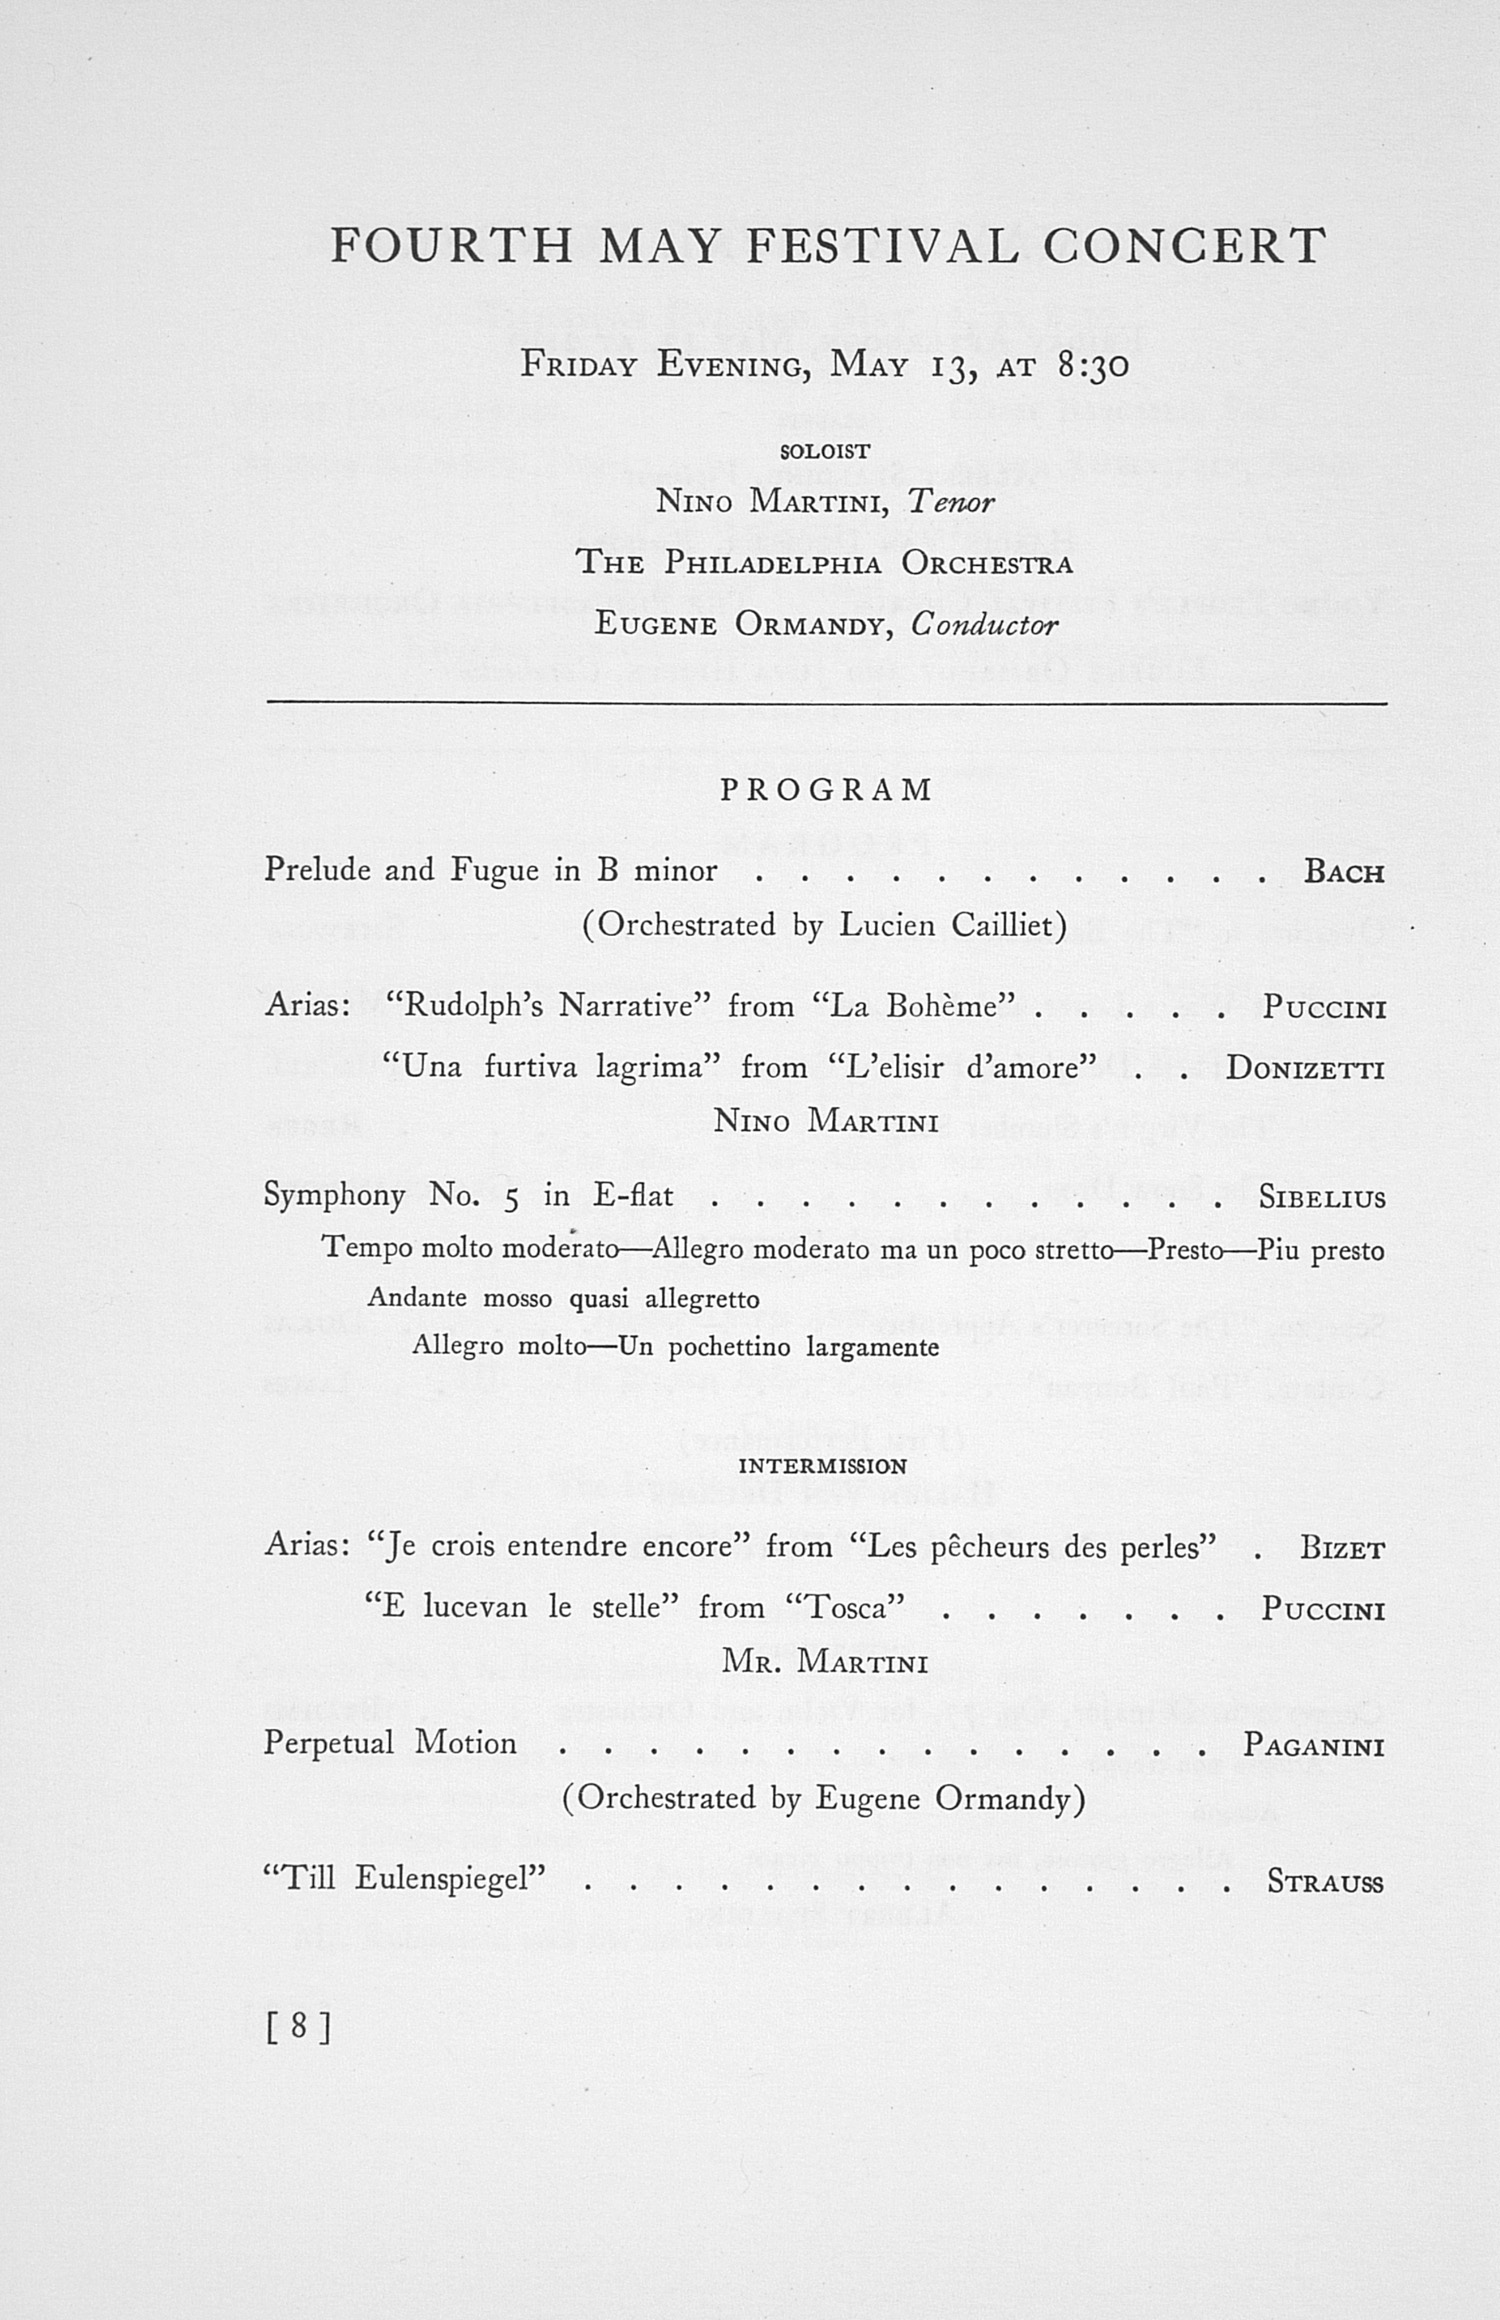 UMS Concert Program, May 11, 12, 13, And 14, 1938: The Forty-fifth Annual May Festival -- Glenn D. Mcgeoch image